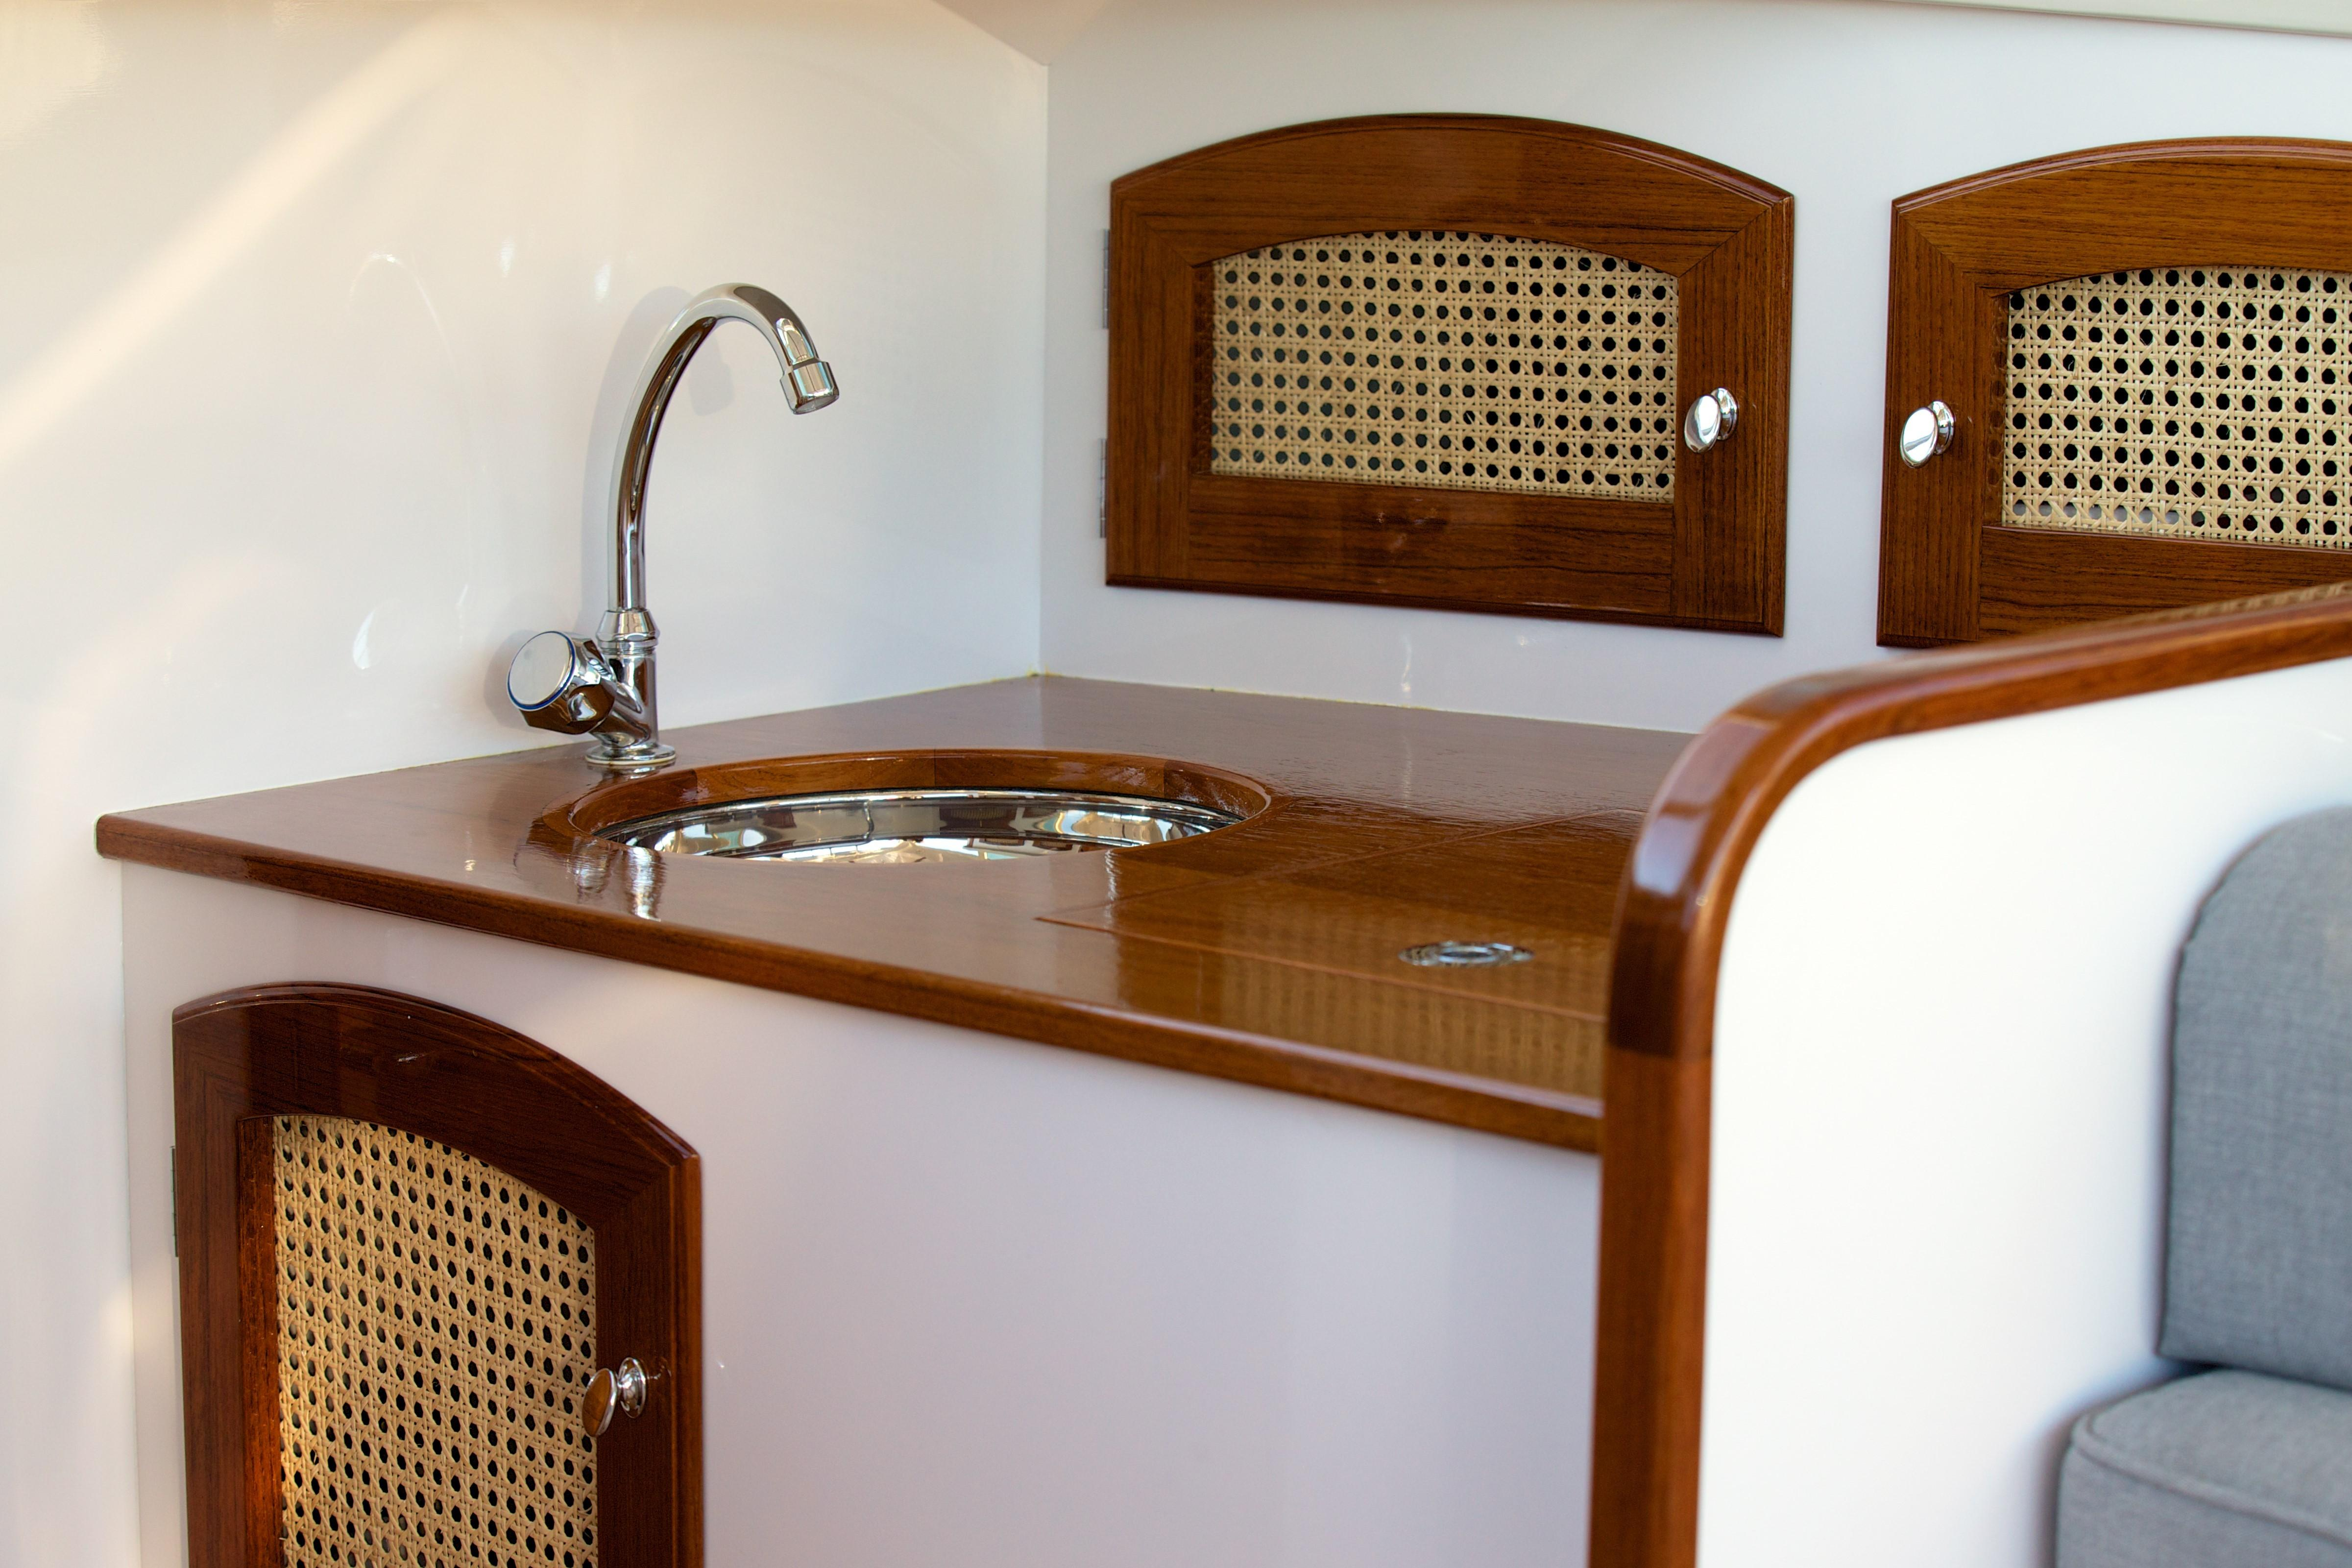 Teak and Cane Cabinetry